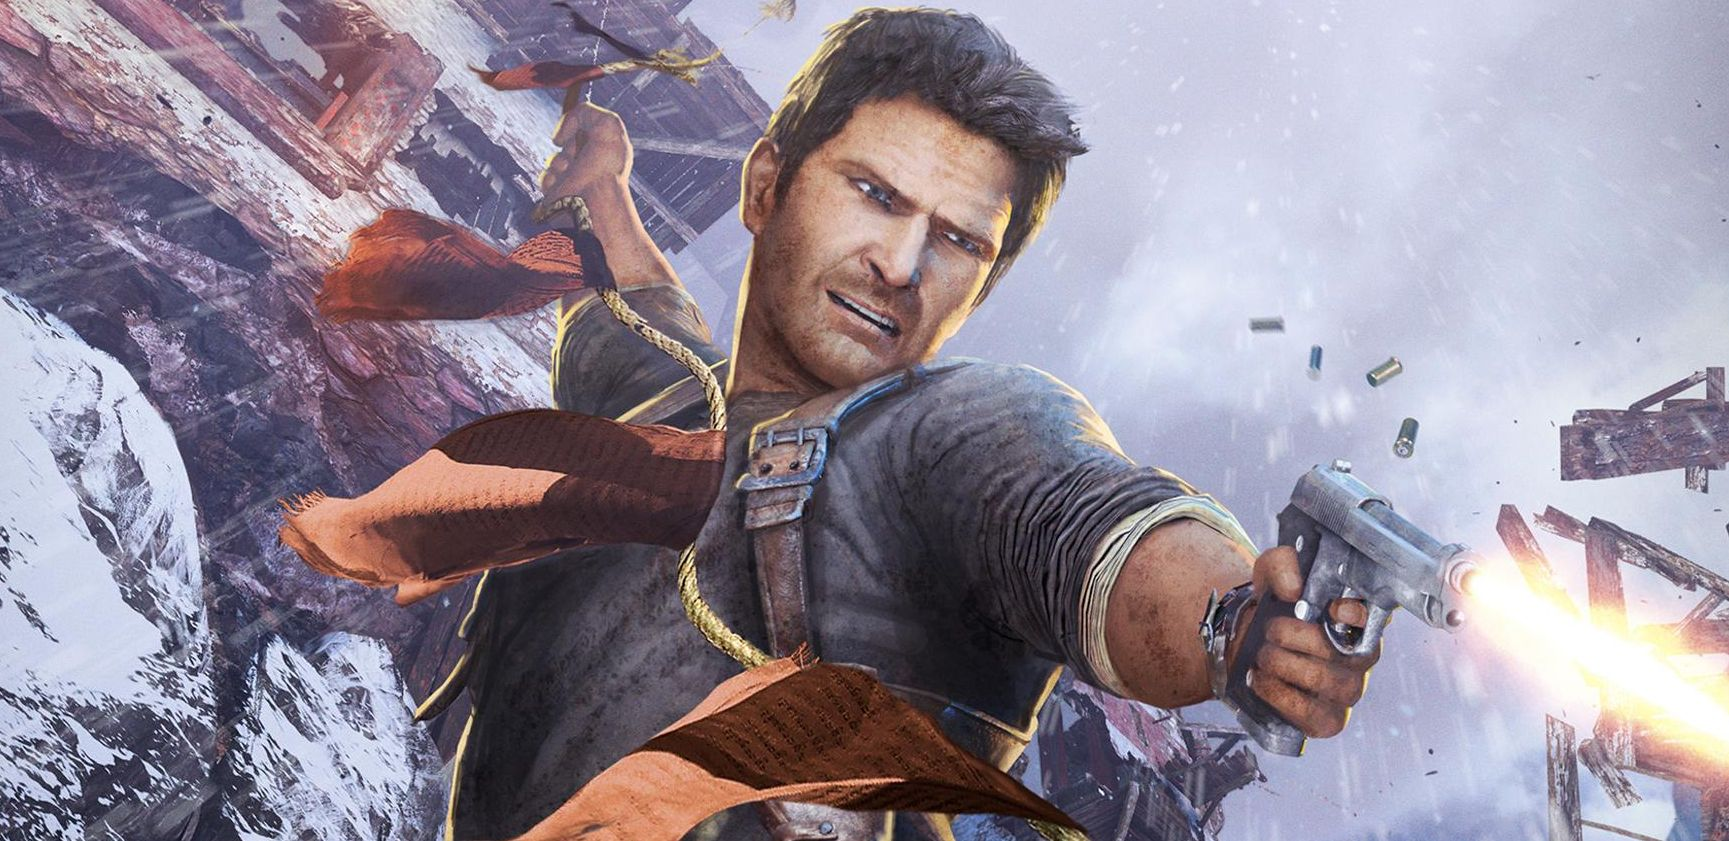 Nathan Drake in the Uncharted series